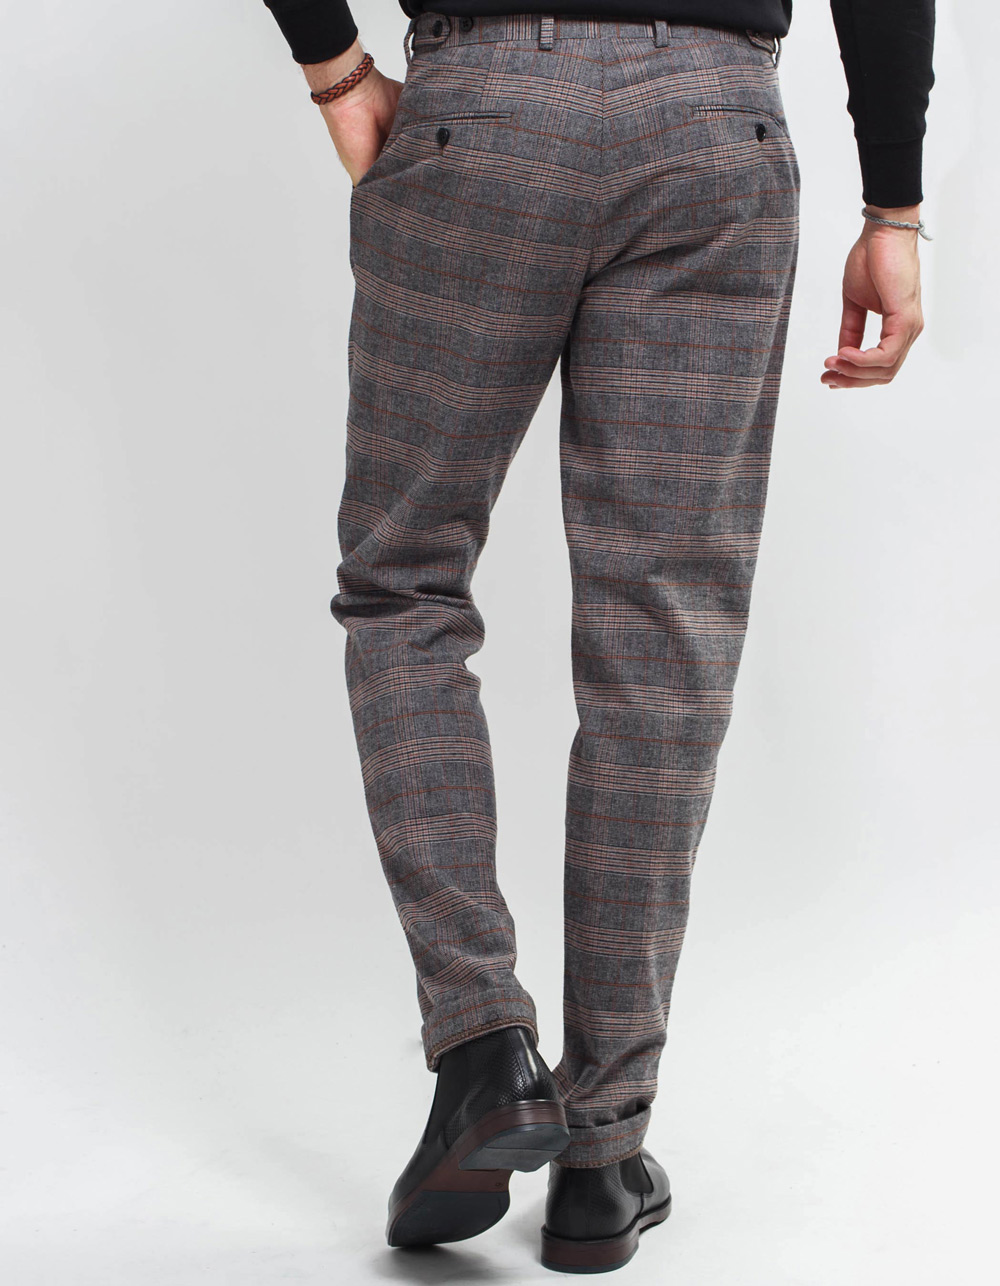 Plaid trousers - Backside